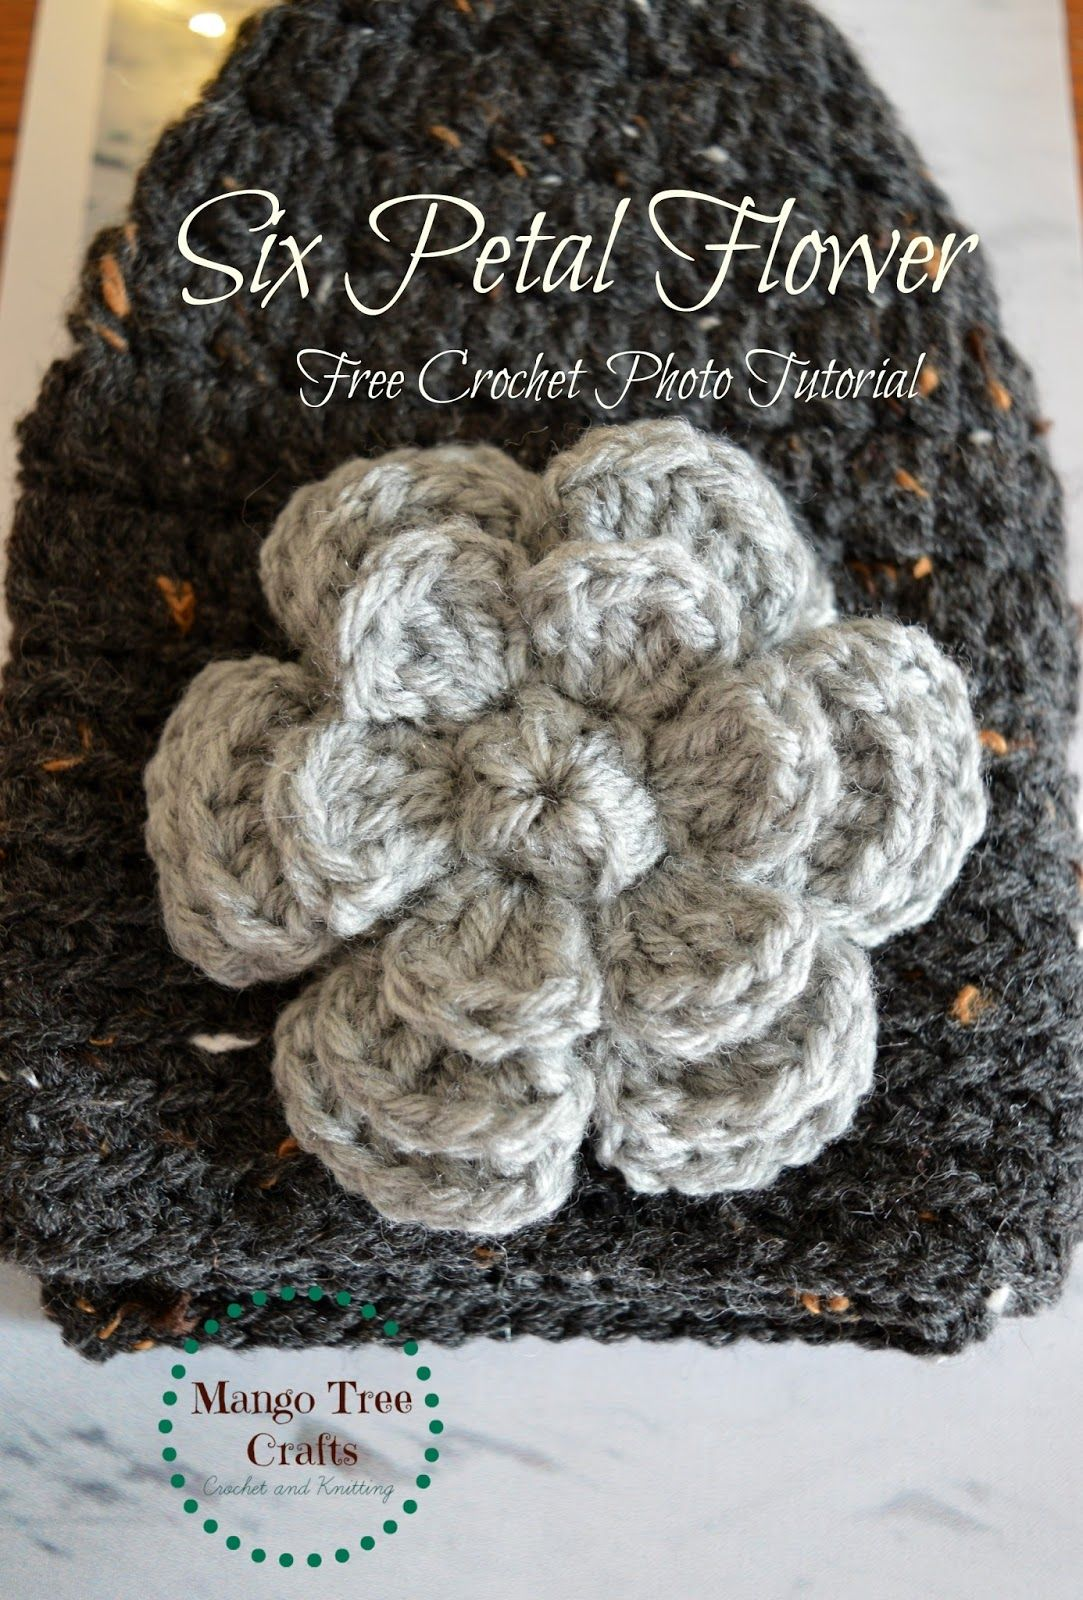 Crochet Flower Free Pattern | martisor | Pinterest | Crochet flowers ...